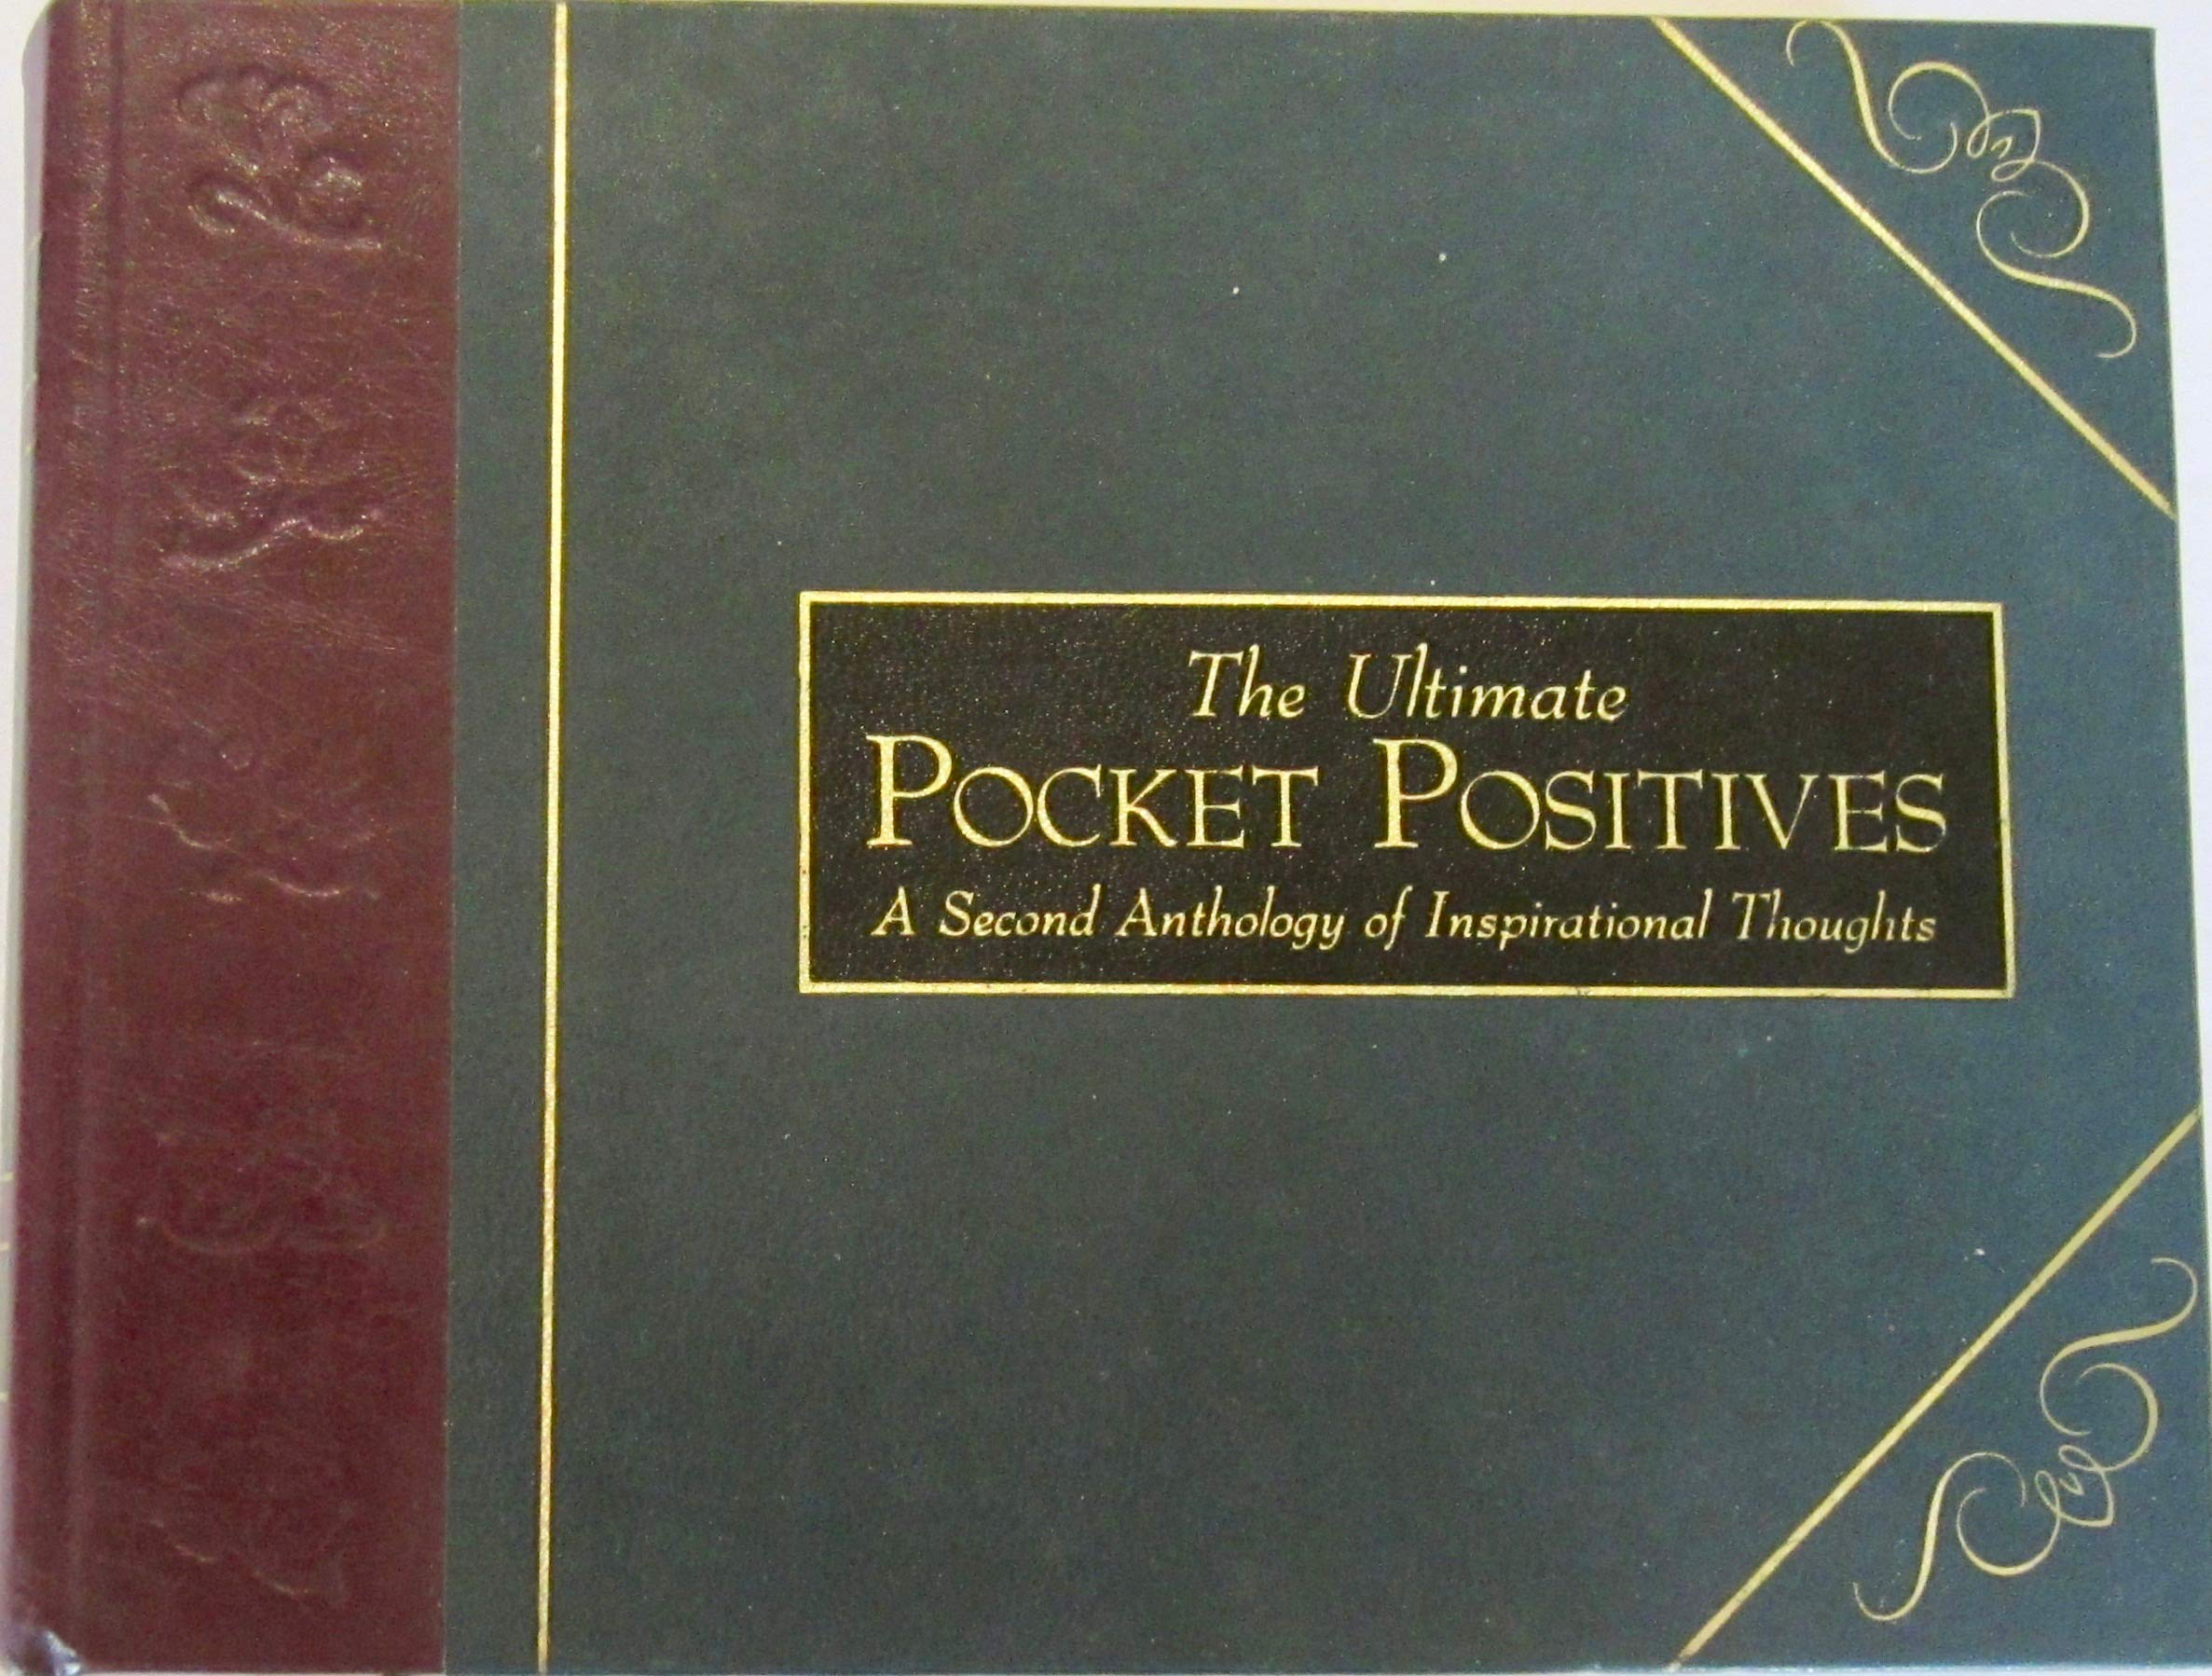 Download The Ultimate Pocket Positives : A Second Anthology of Inspirational Thoughts PDF